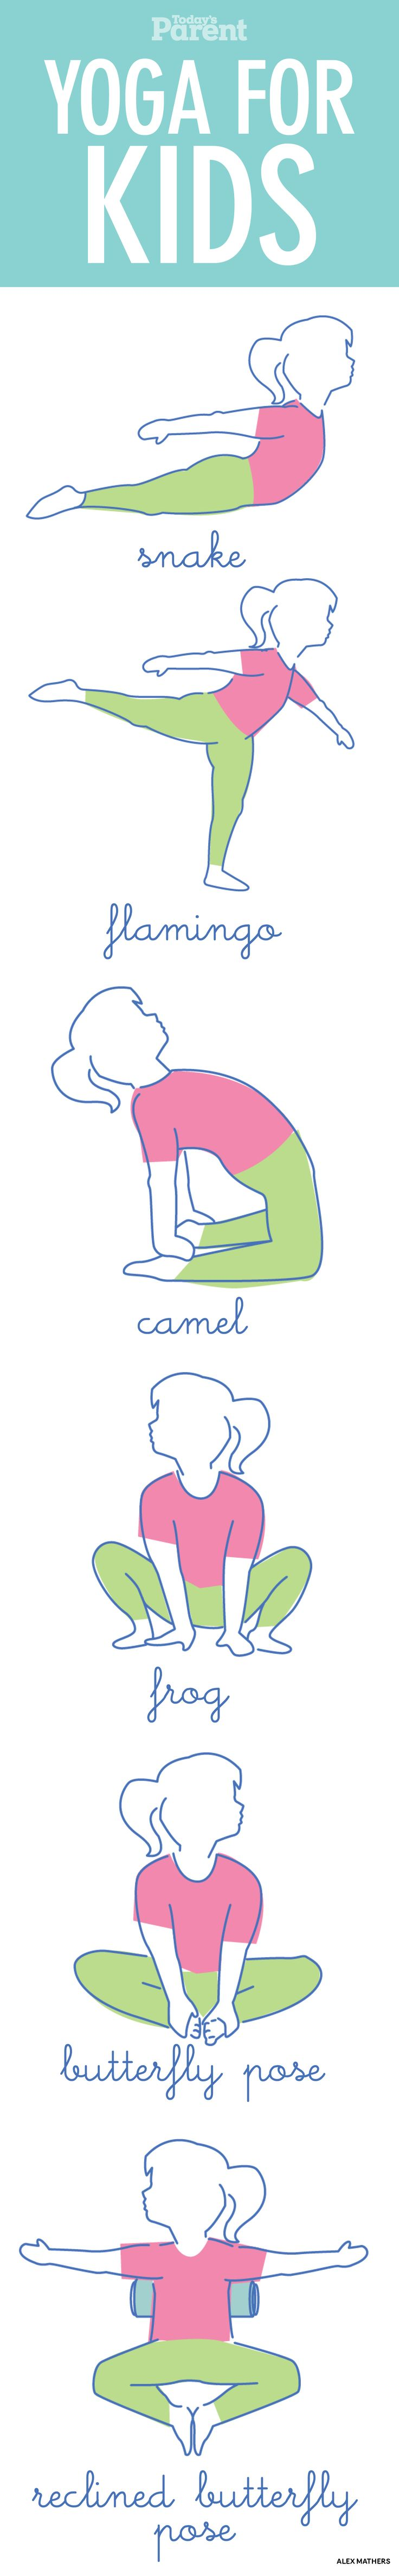 simple yoga poses to help kids fight anxiety and cope with stress